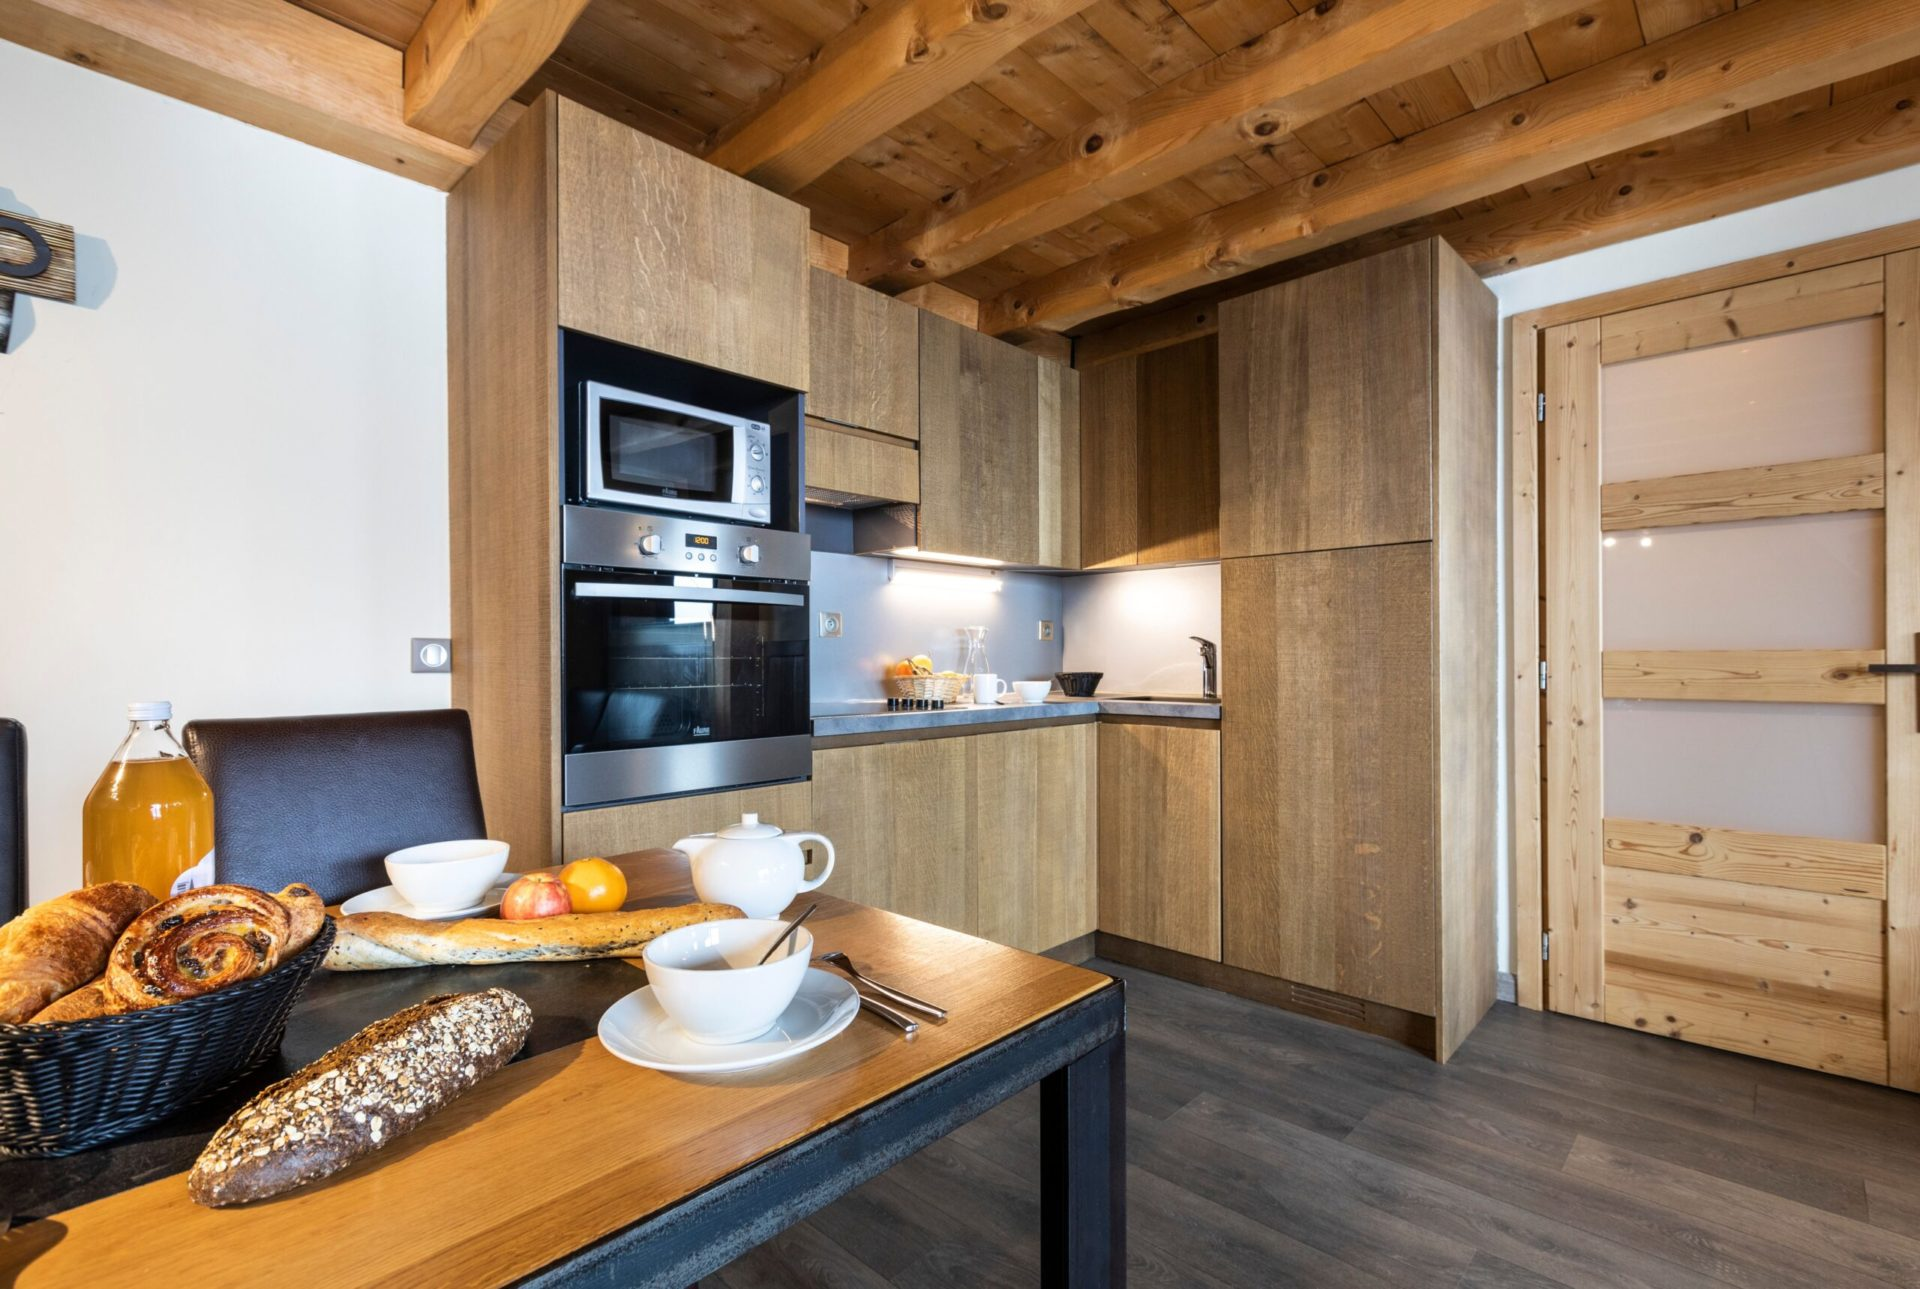 An image of the kitchen facilities in an apartment in Chalet des Neiges Residence Hermine